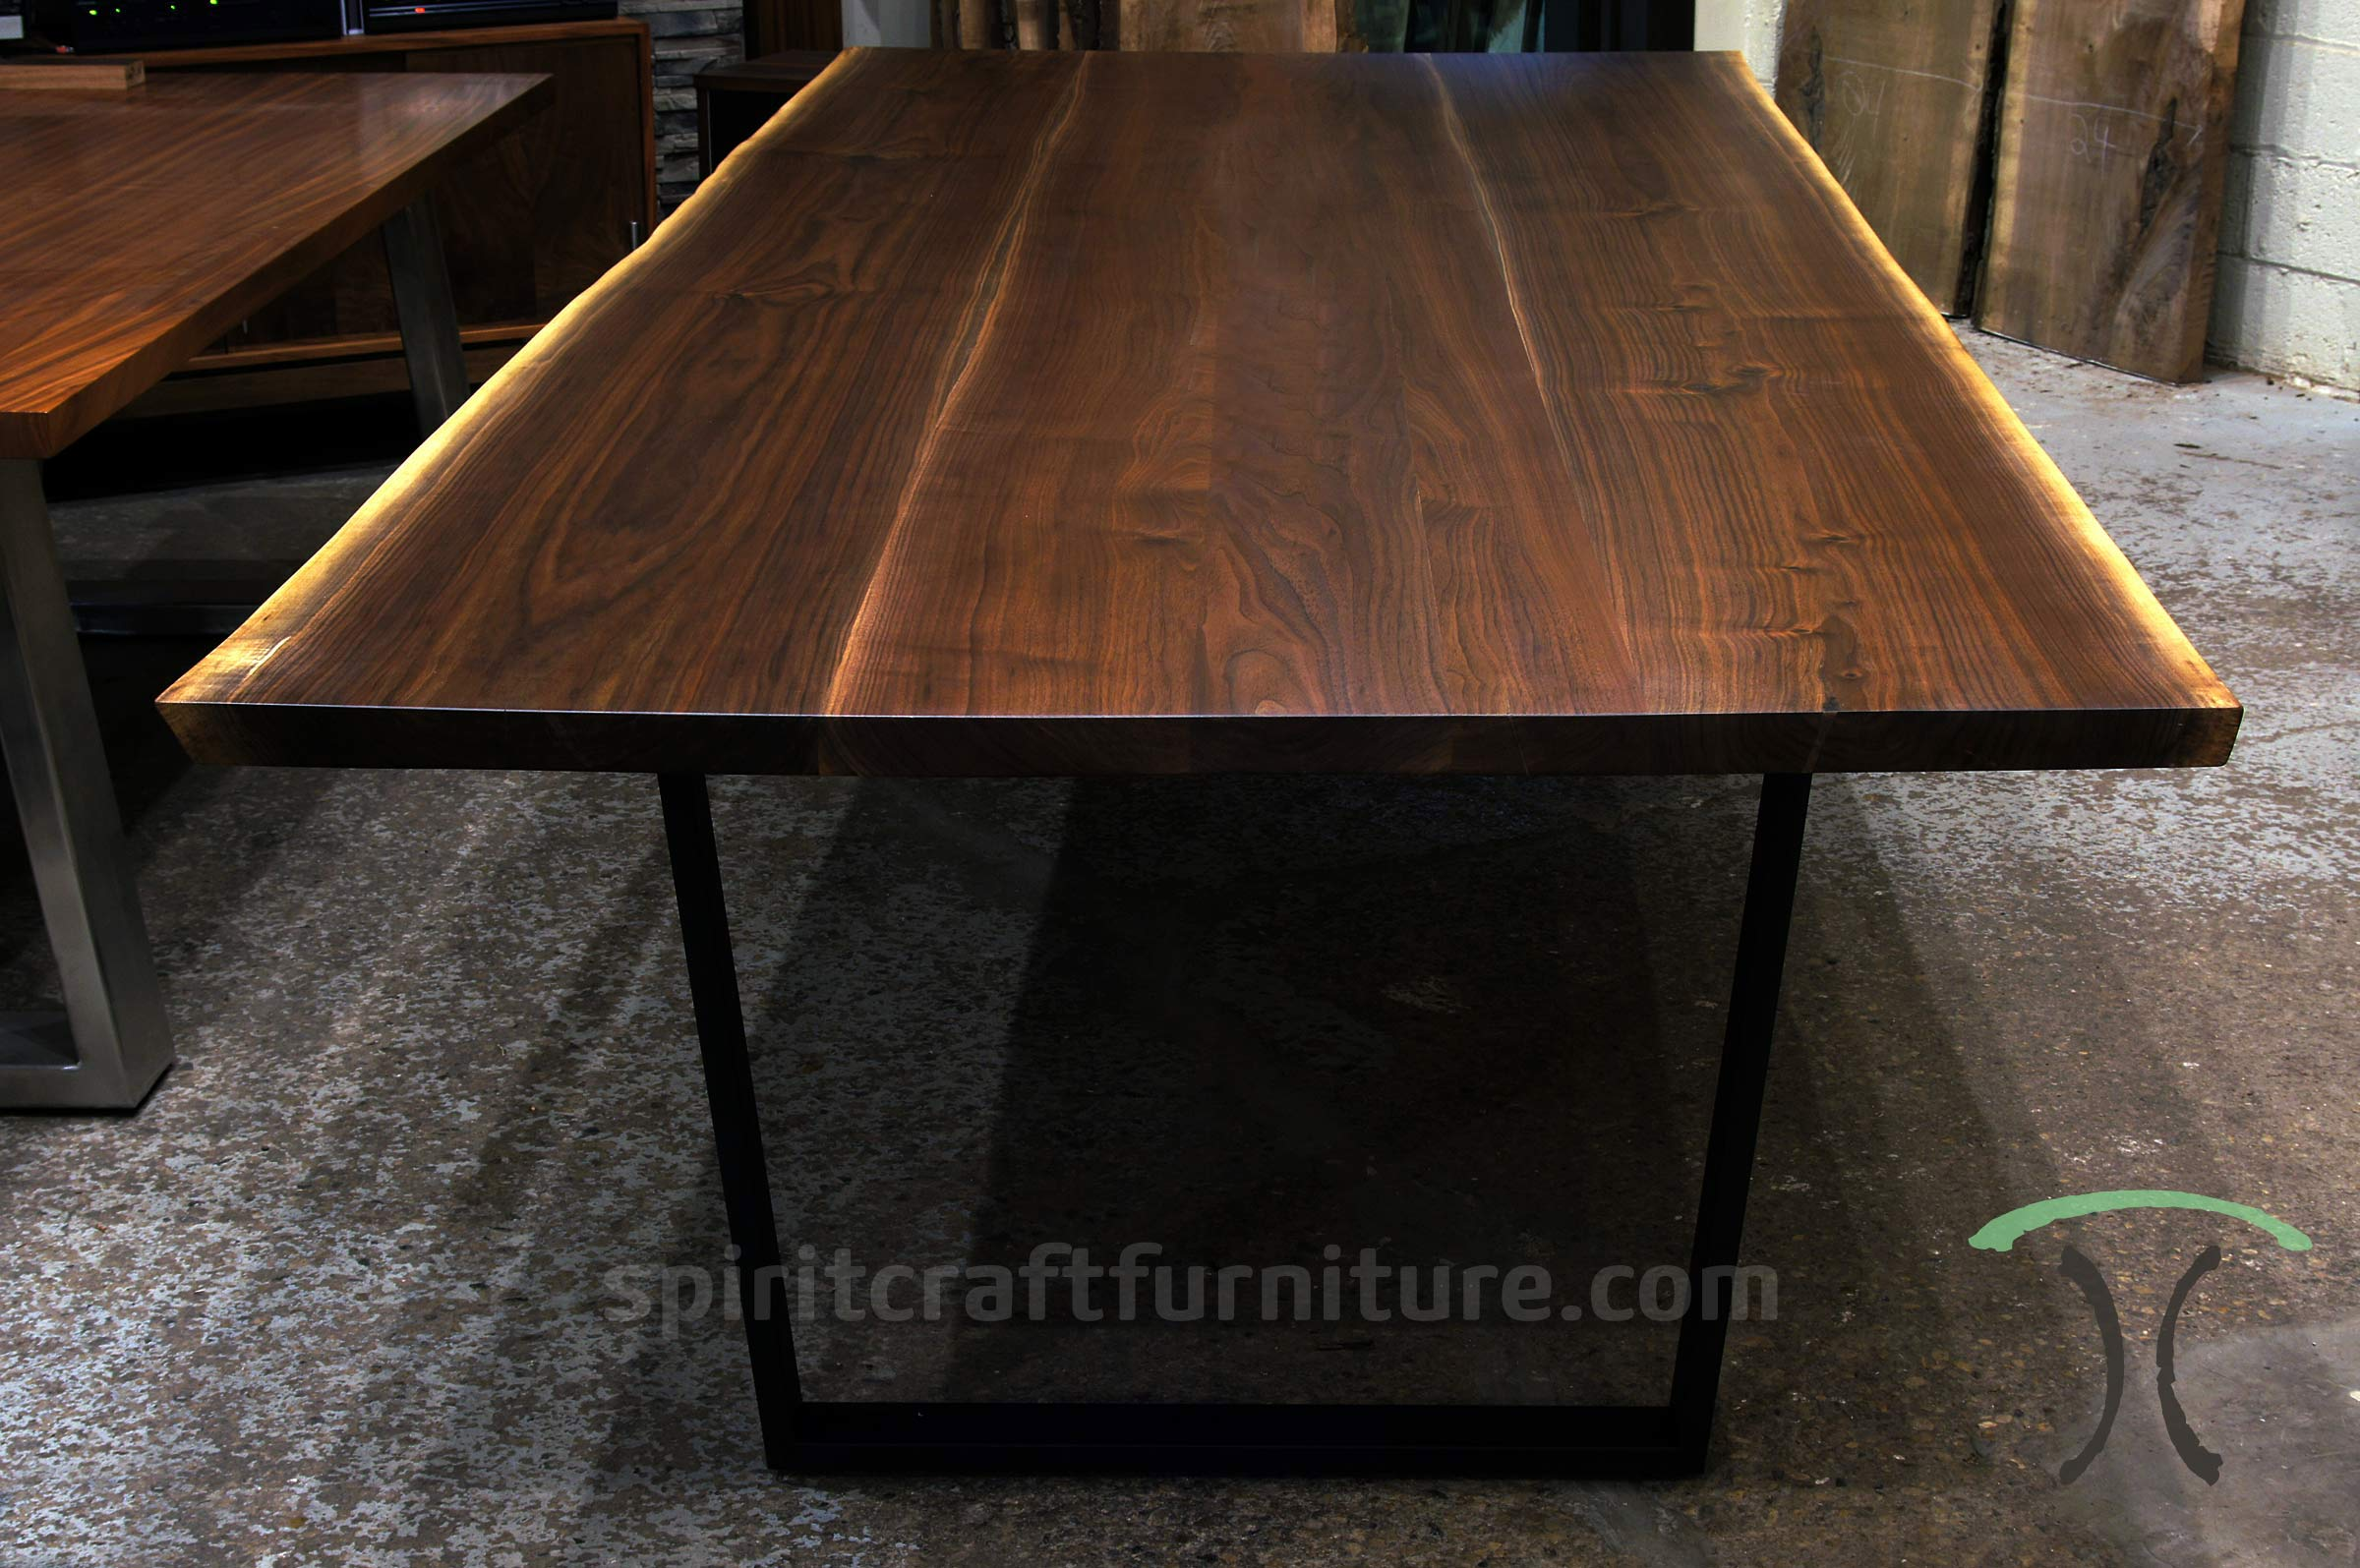 Live edge conference table handcrafted in Dundee, IL and shown in our furniture store in Chicago area, East Dundee, Illinois